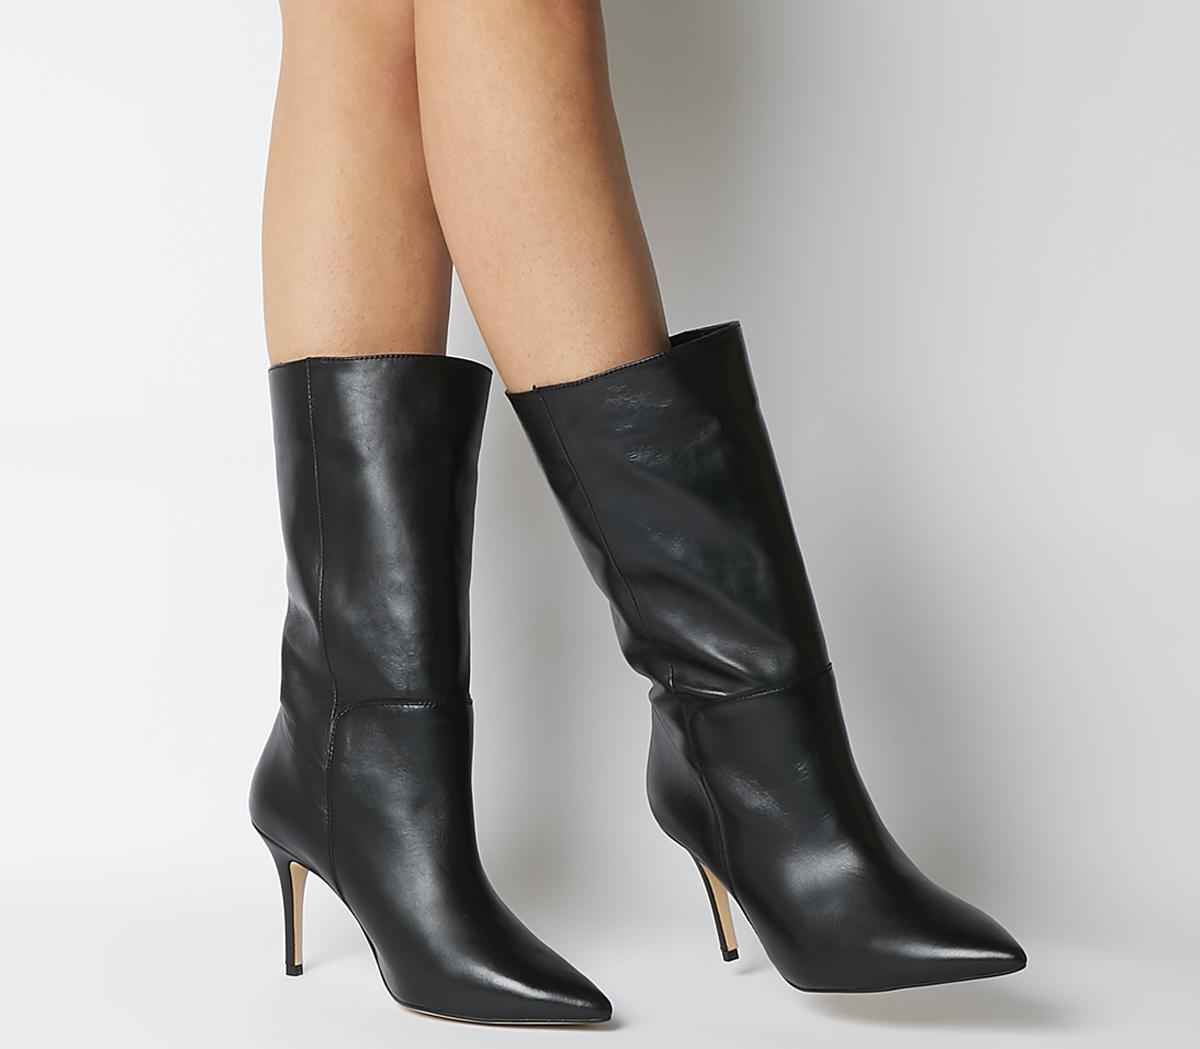 Office Koffee Pointed Calf Boots Black